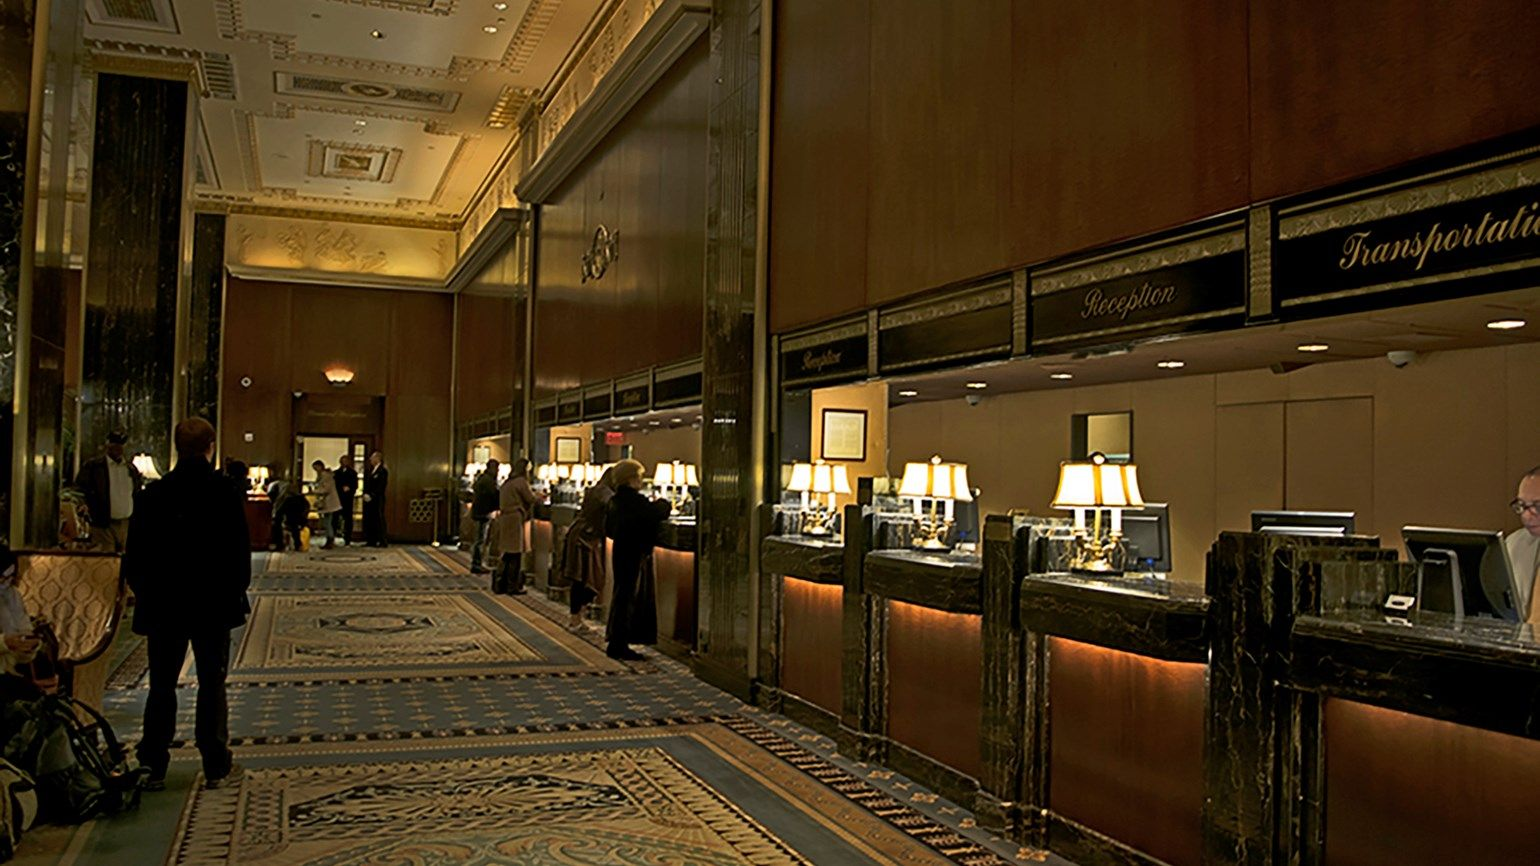 An icon among the world's great hotels, the Waldorf sets 3-year return to glory: Travel Weekly